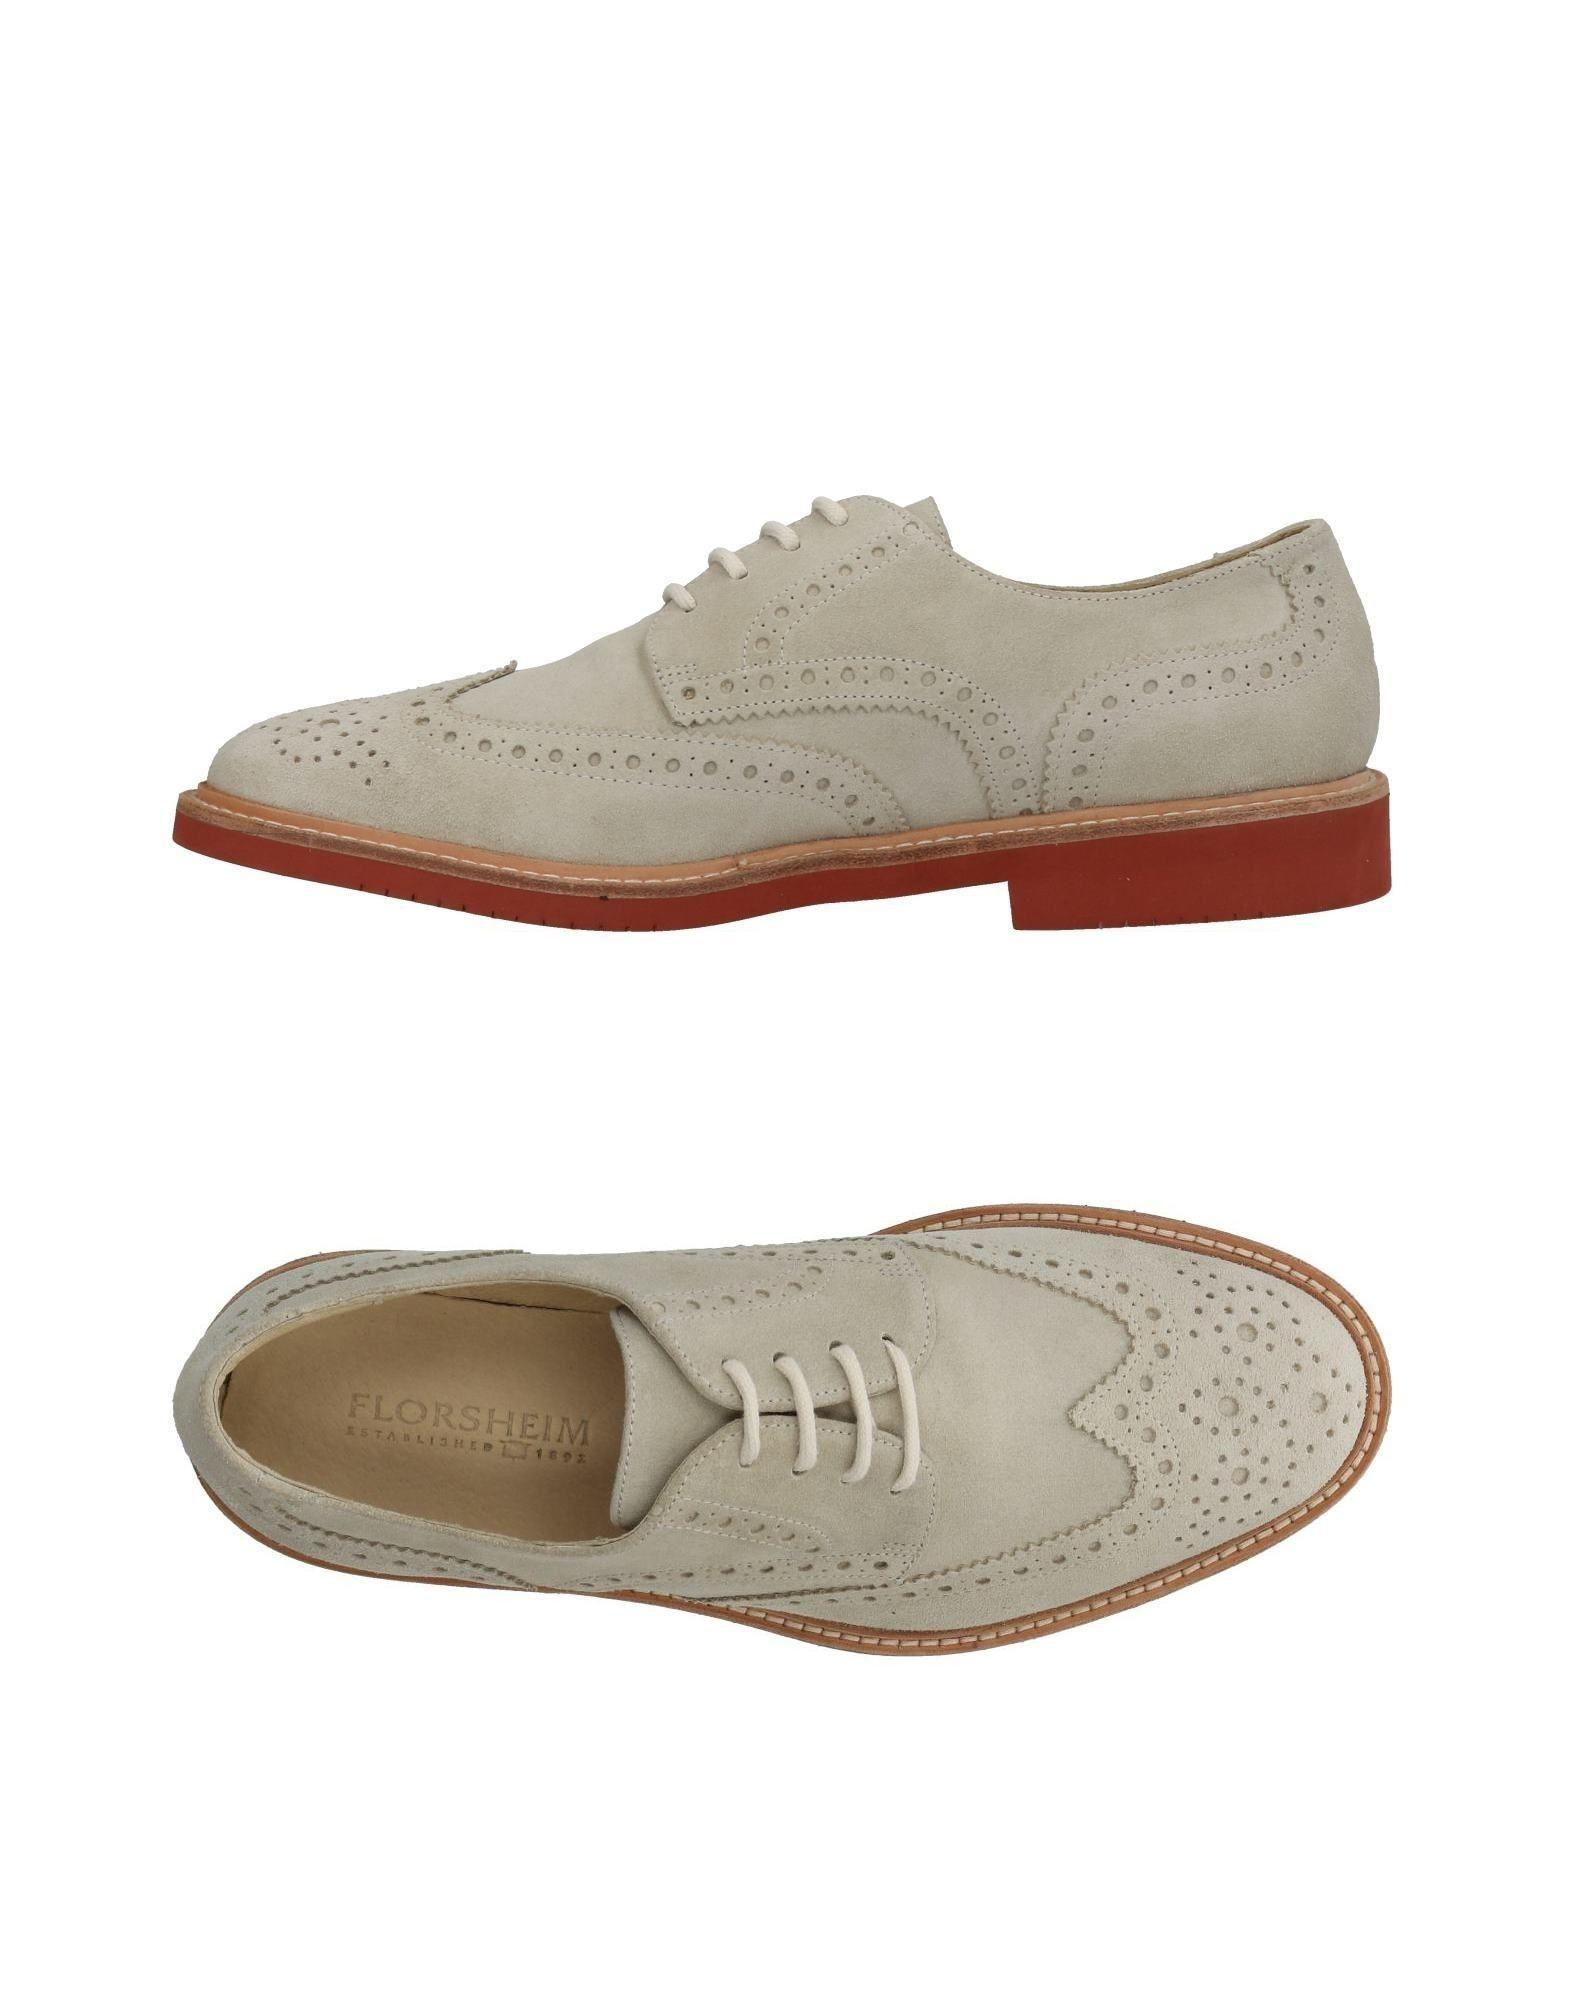 Florsheim Lace-up Shoes In Beige